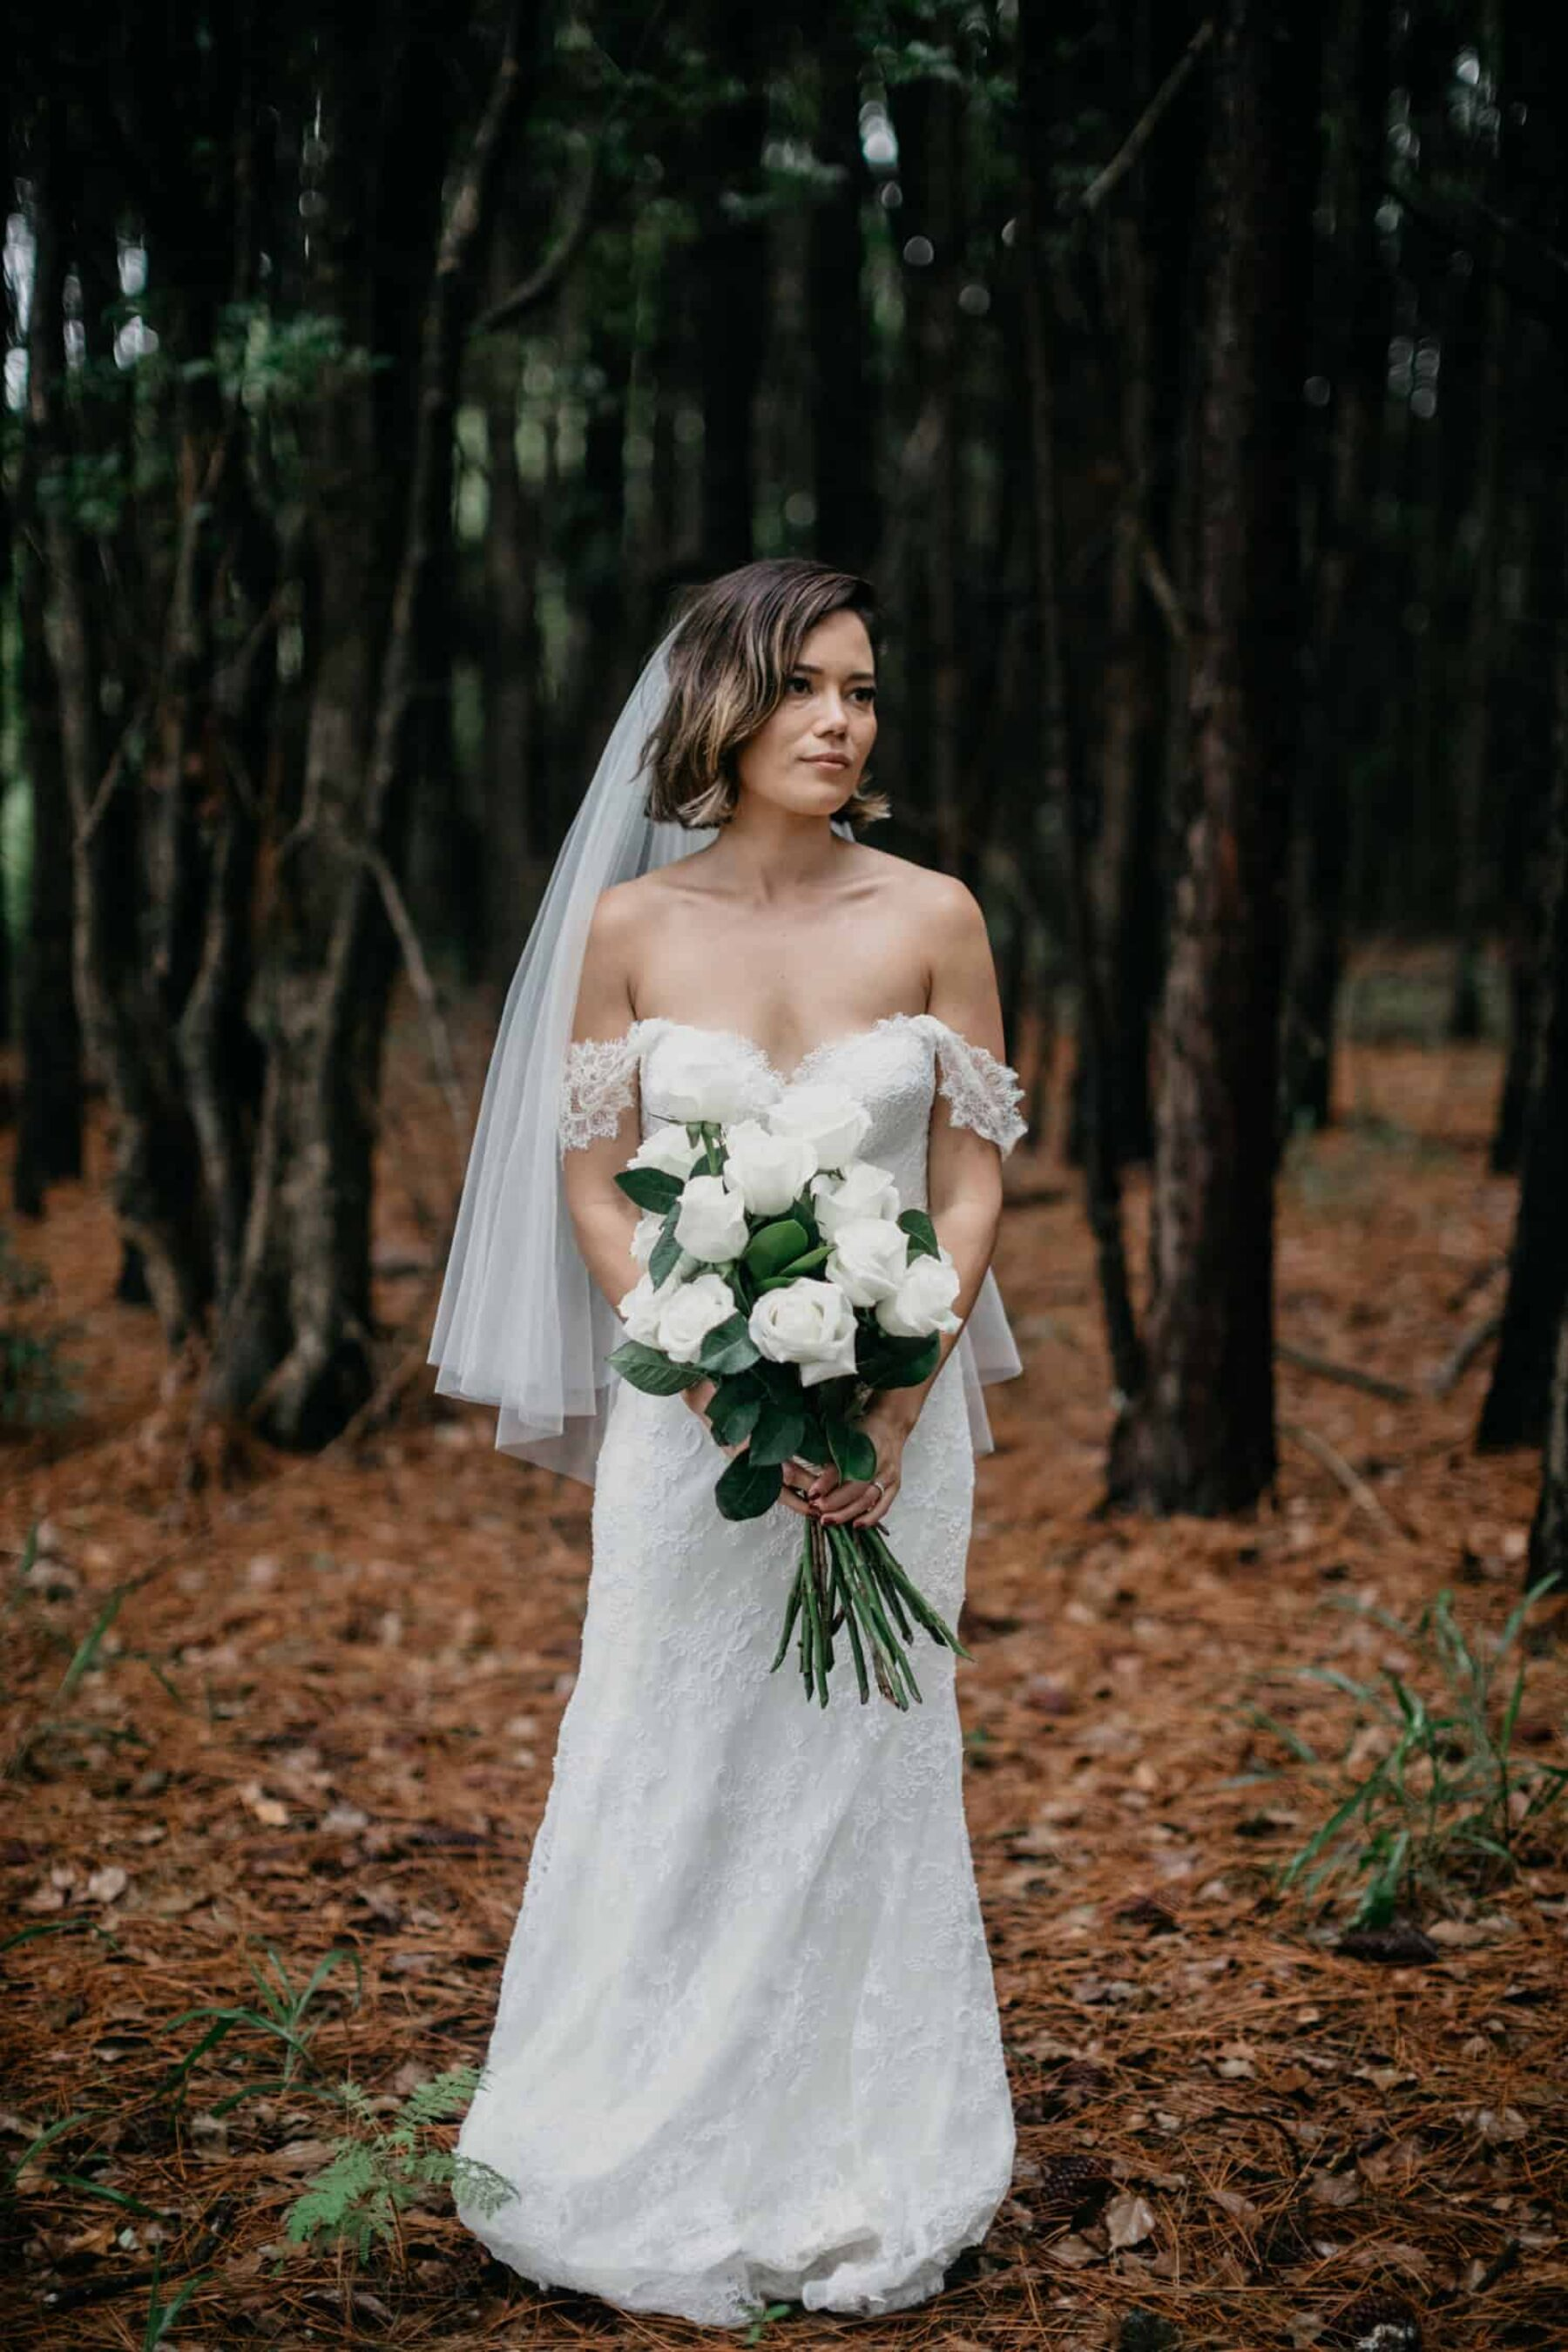 strapless wedding dress and classic white and green bouquet